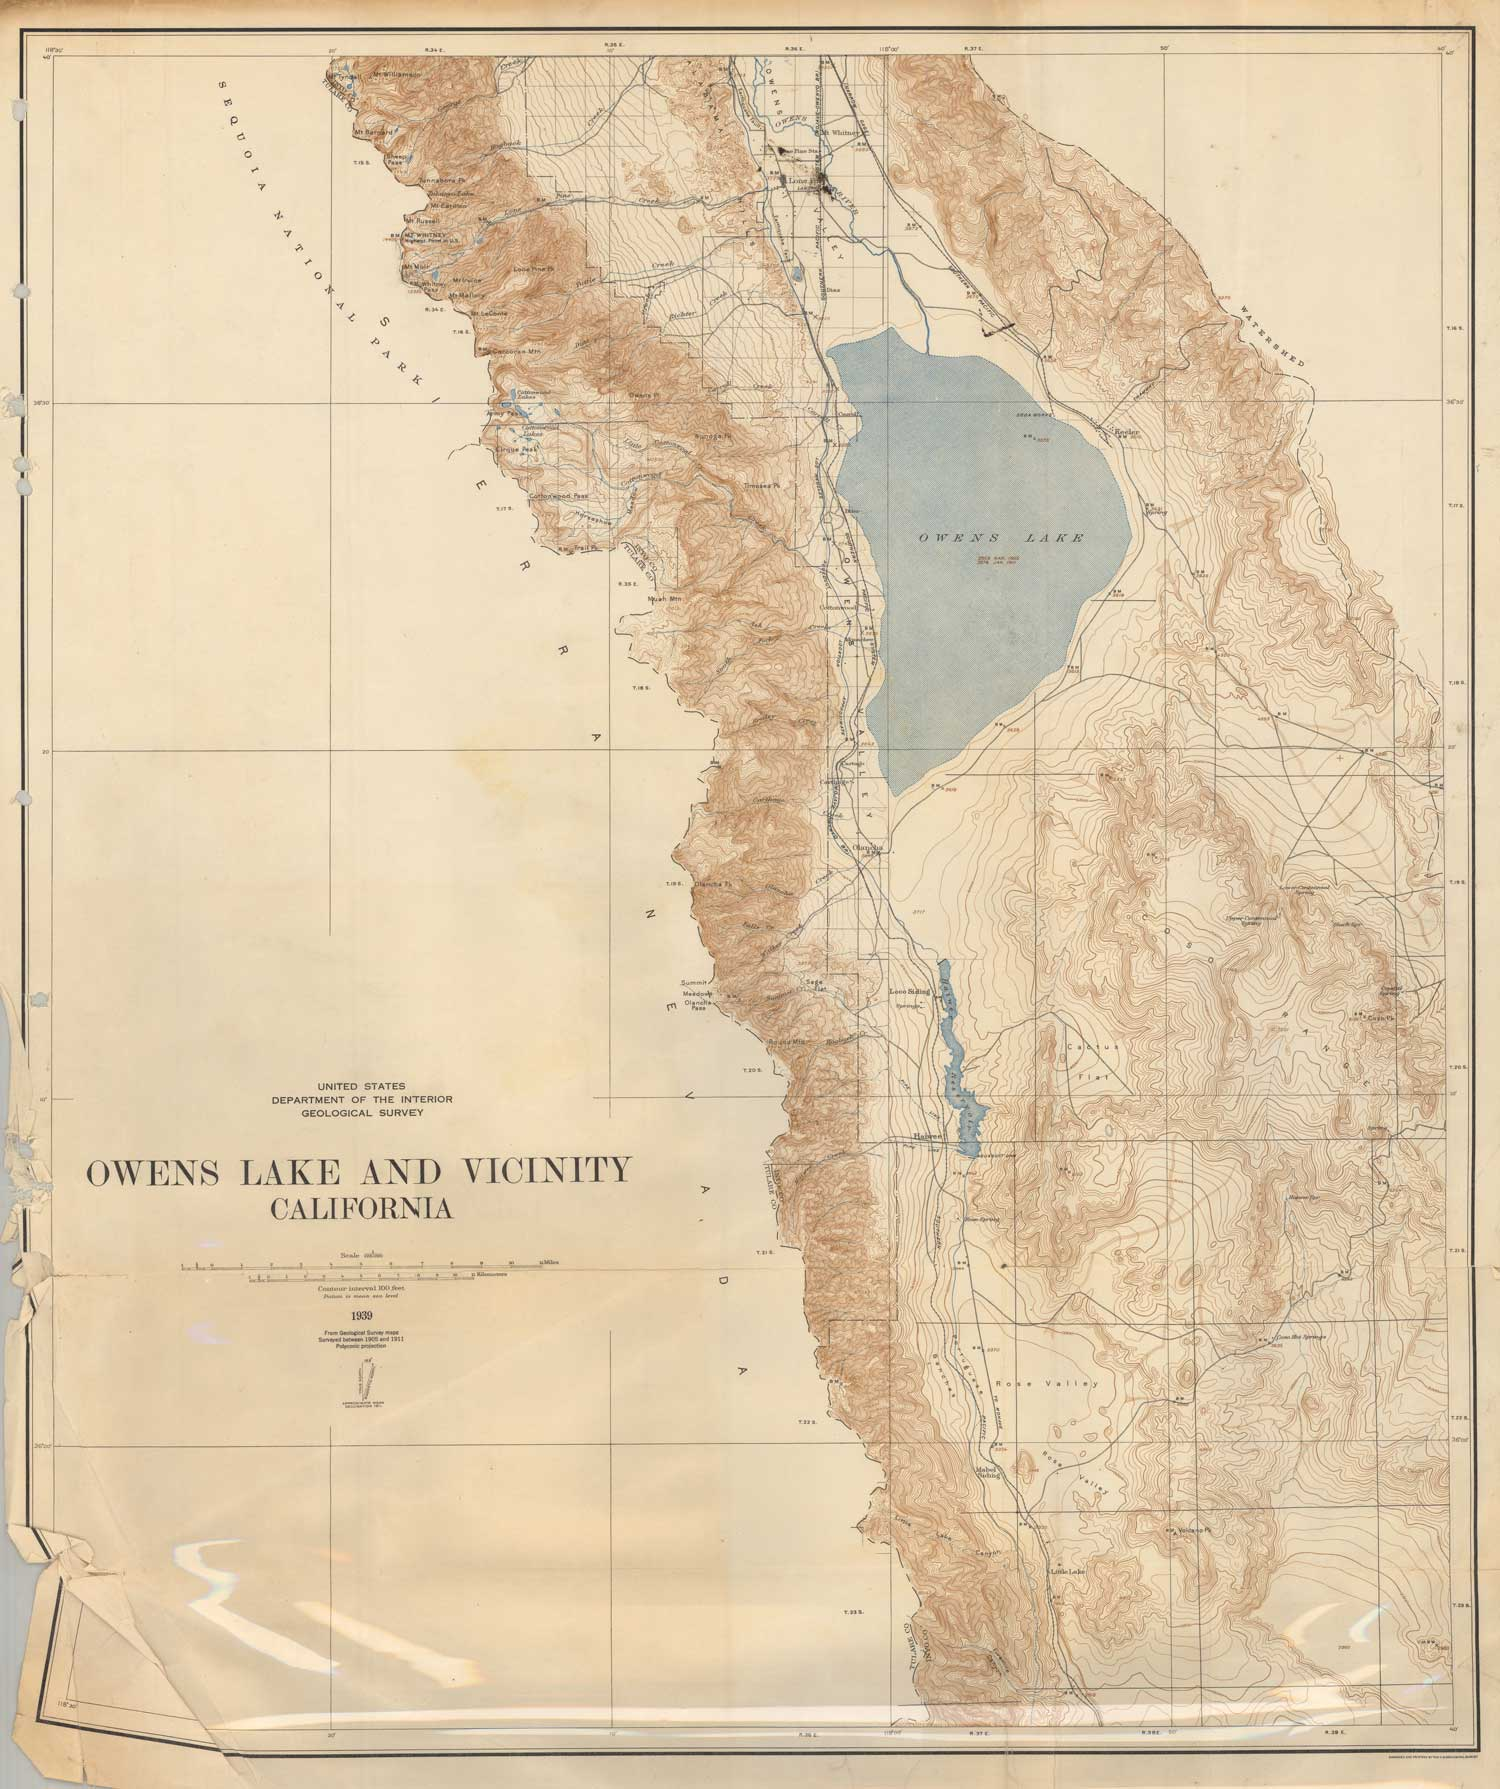 CityDig Heres What Owens Lake Looked Like Before Los Angeles Drank